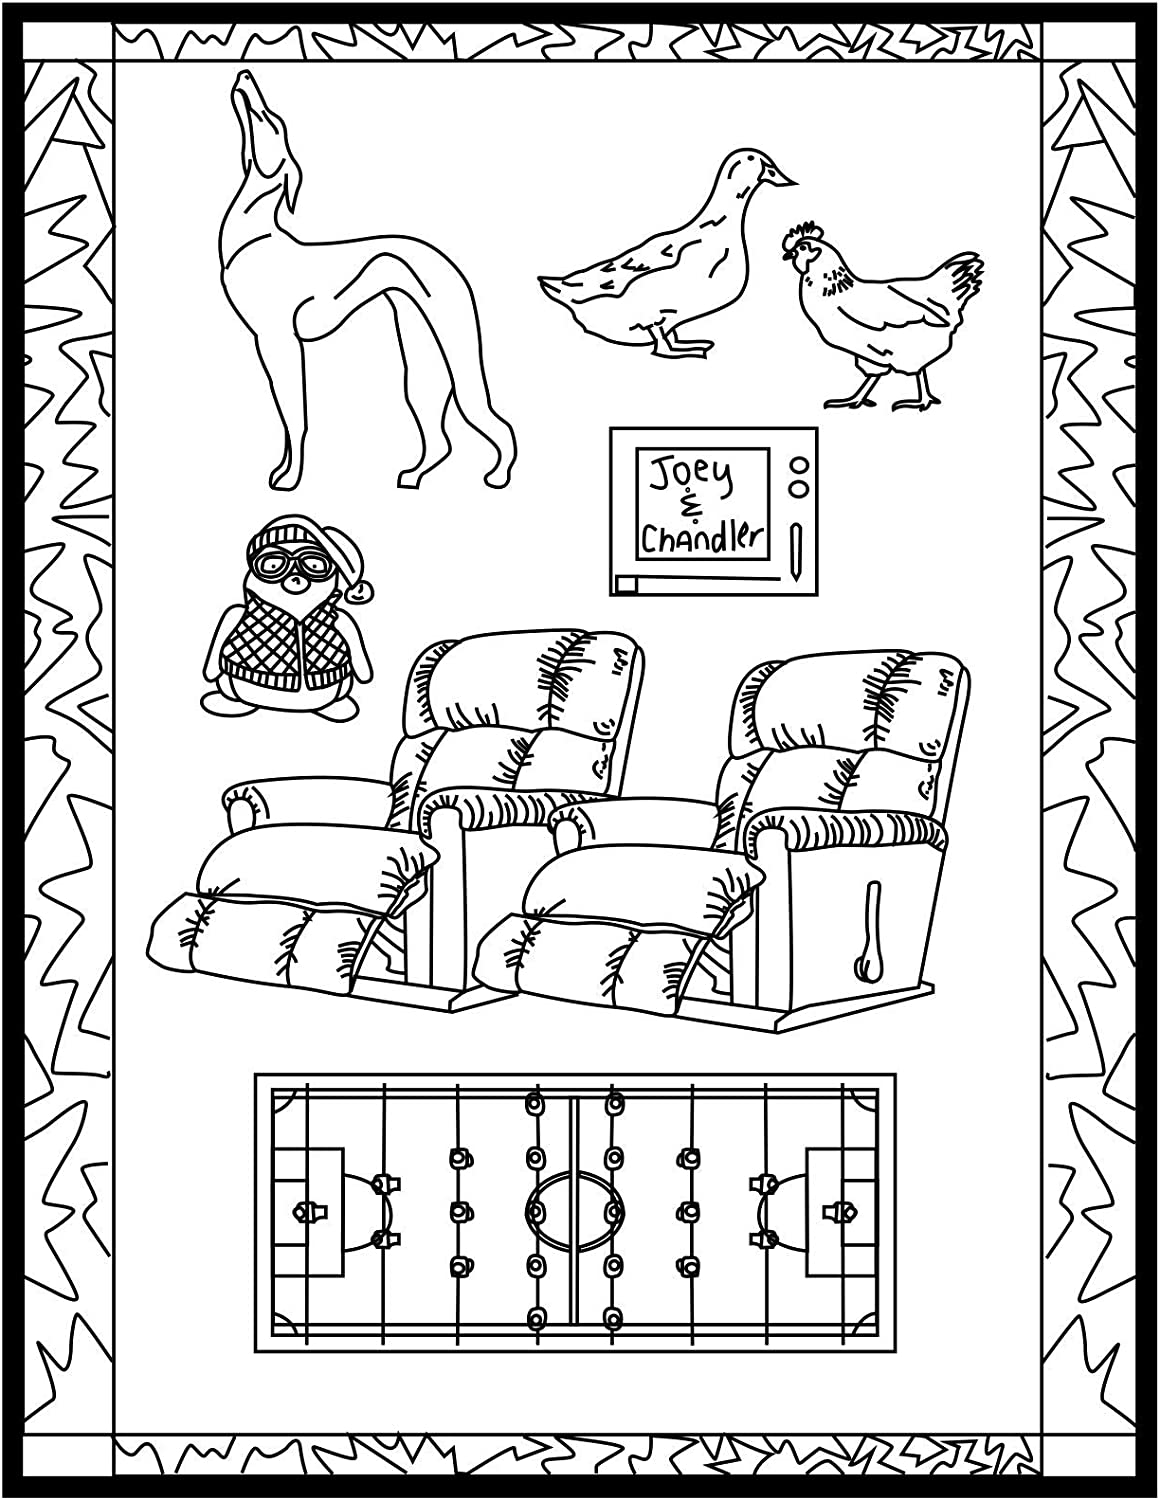 Here Are 24 Free Pet Coloring Pages to Help You Relax | Dog ... | 1500x1162